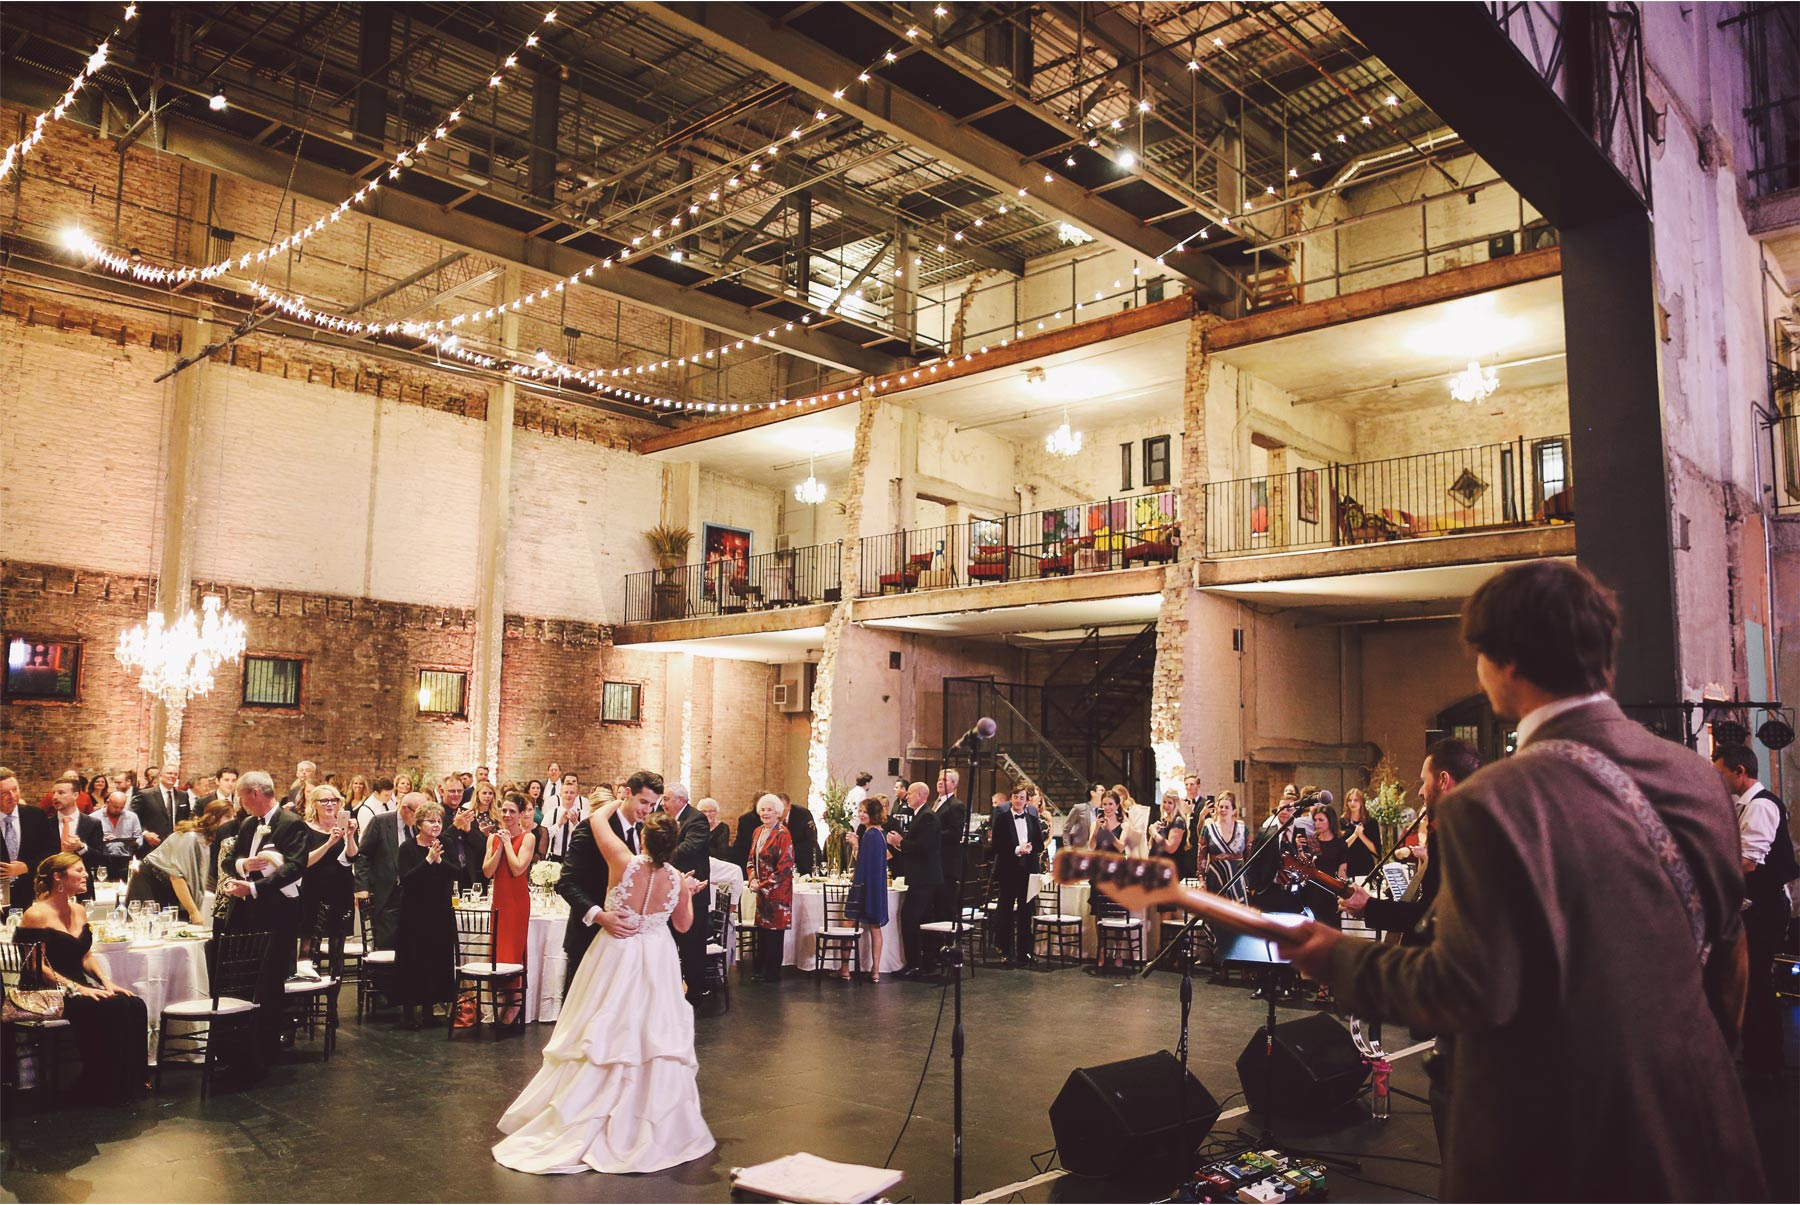 16-Minneapolis-Minnesota-Wedding-Photographer-Vick-Photography-Downtown-Aria-Reception-Industrial-Dance-Carrie-and-August.jpg